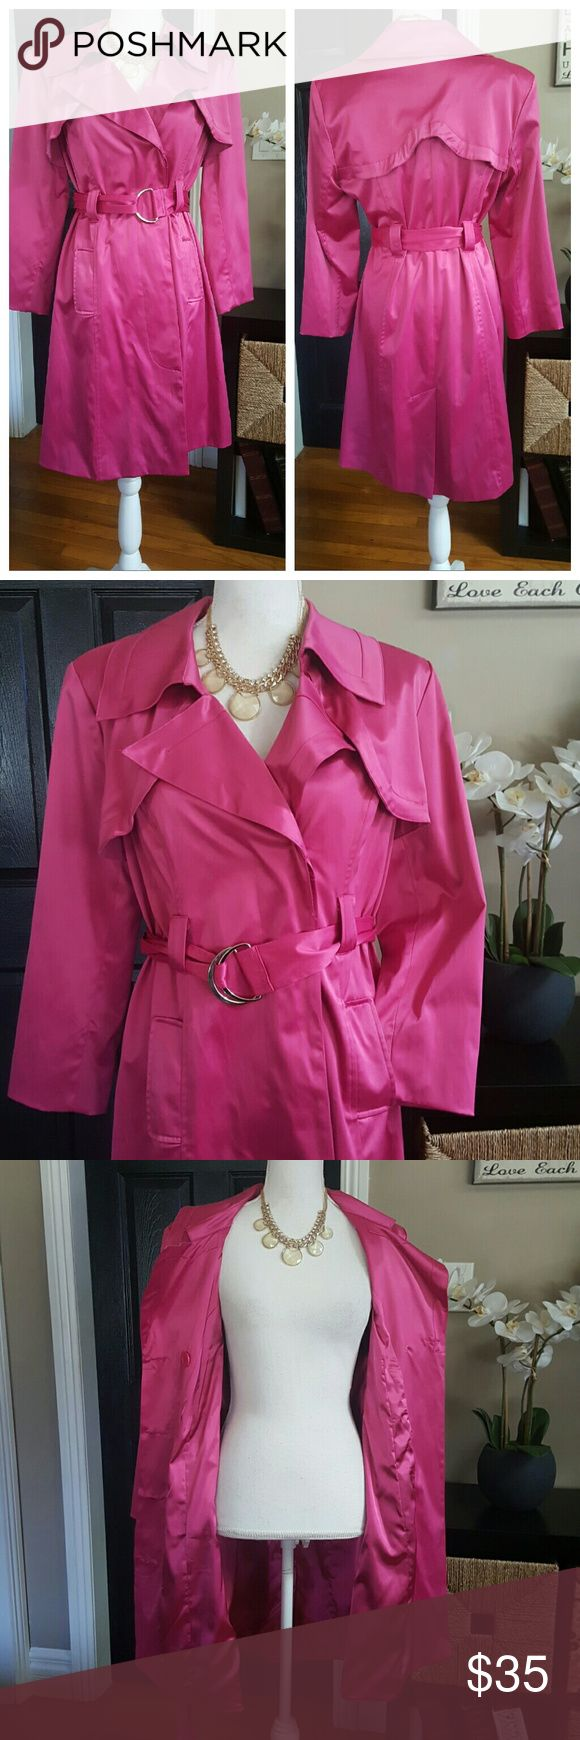 "NY Collection Pink Coat sz M 😍 Gorgeous  coat  by NY Collection. 52% polyester 46% cotton Aprox 36"" long. Priced to sell. NY Collection Jackets & Coats Trench Coats"